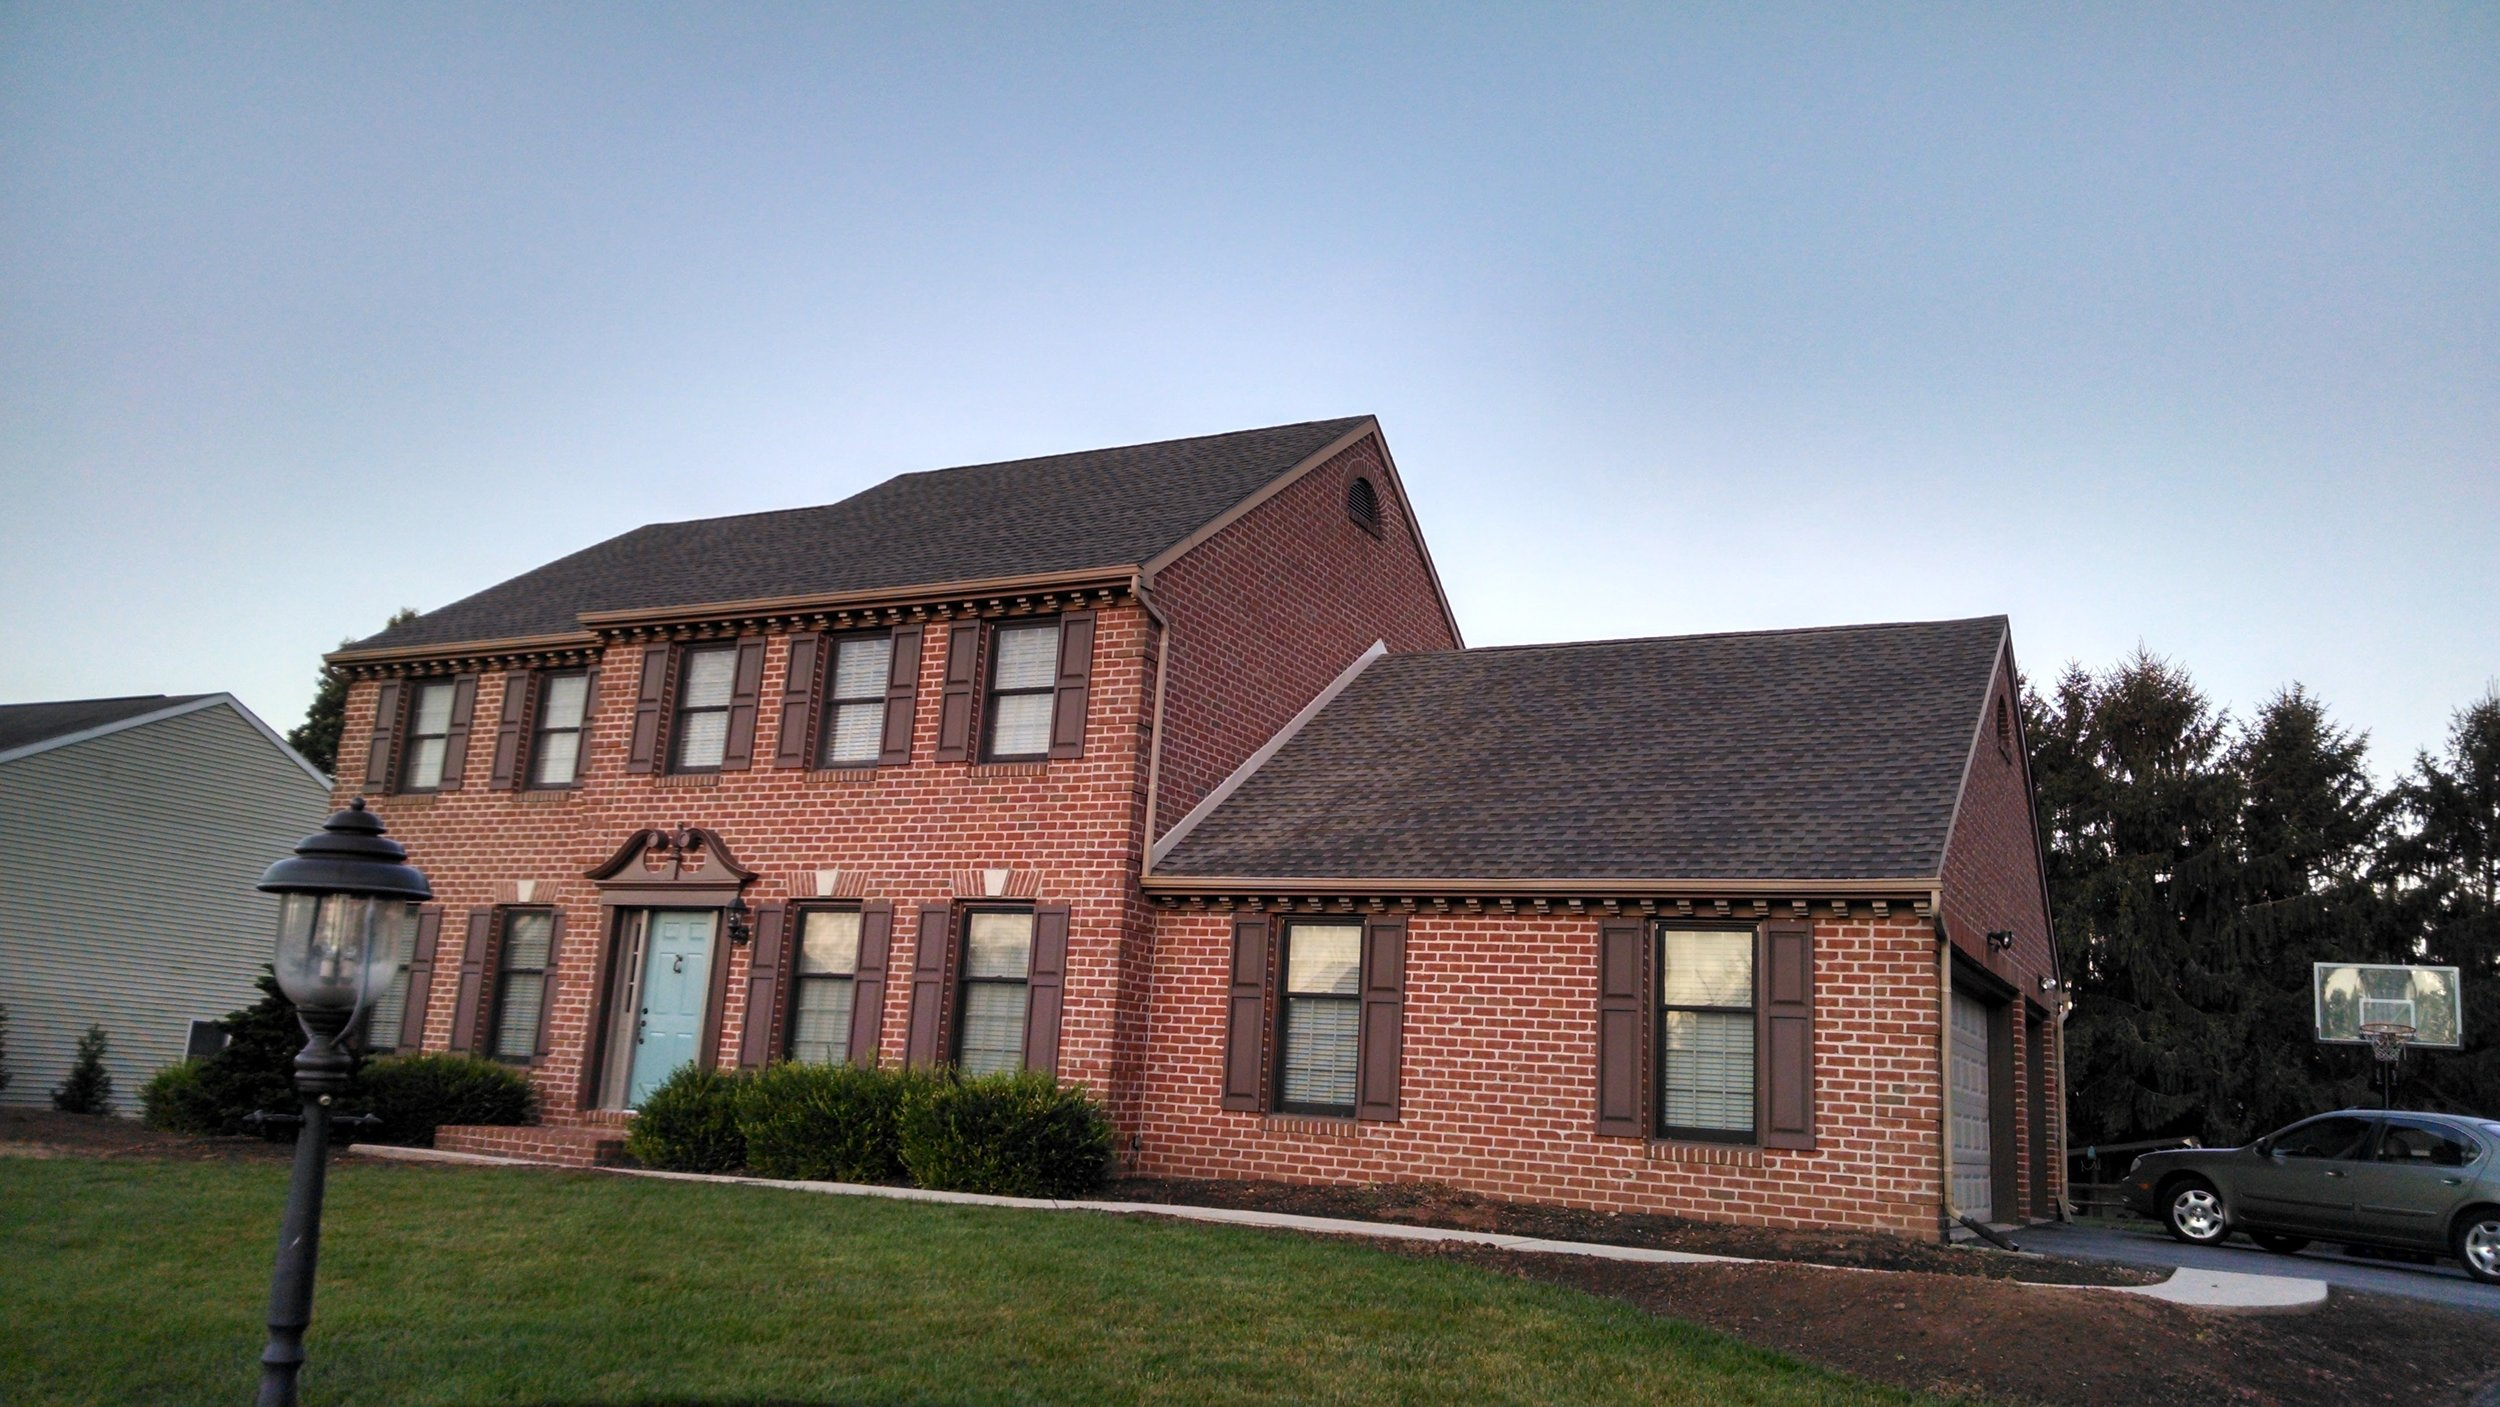 Replaced the old roof with a new GAF Timberline HD shingle. The color is weathered wood.